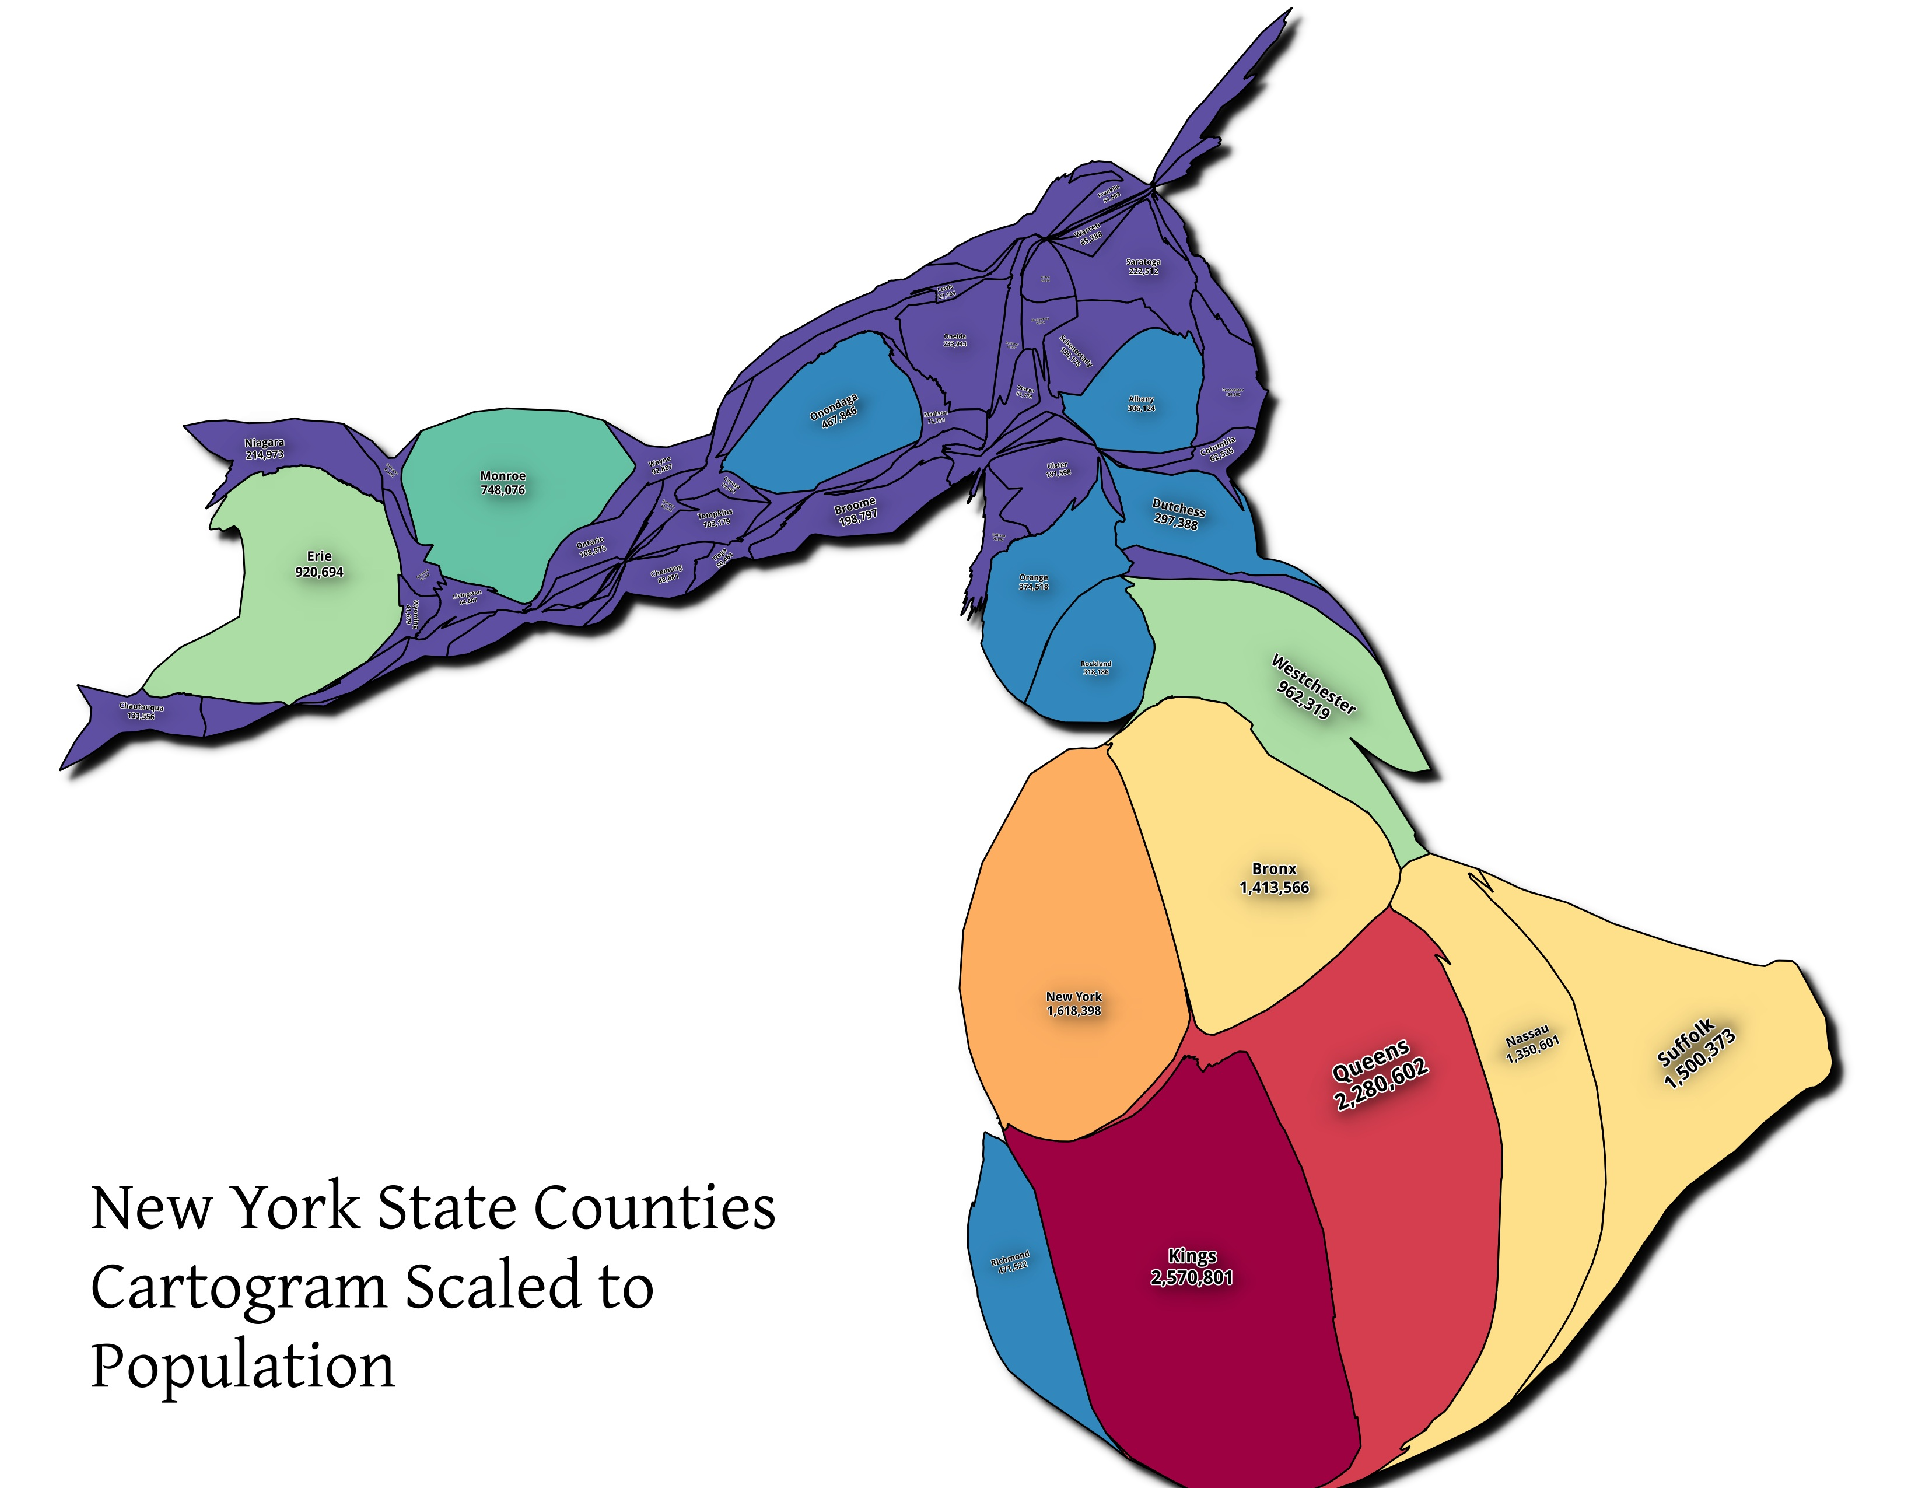 Map NYS Counties Population Cartogram Andy Arthurorg - Us county population map cartogram